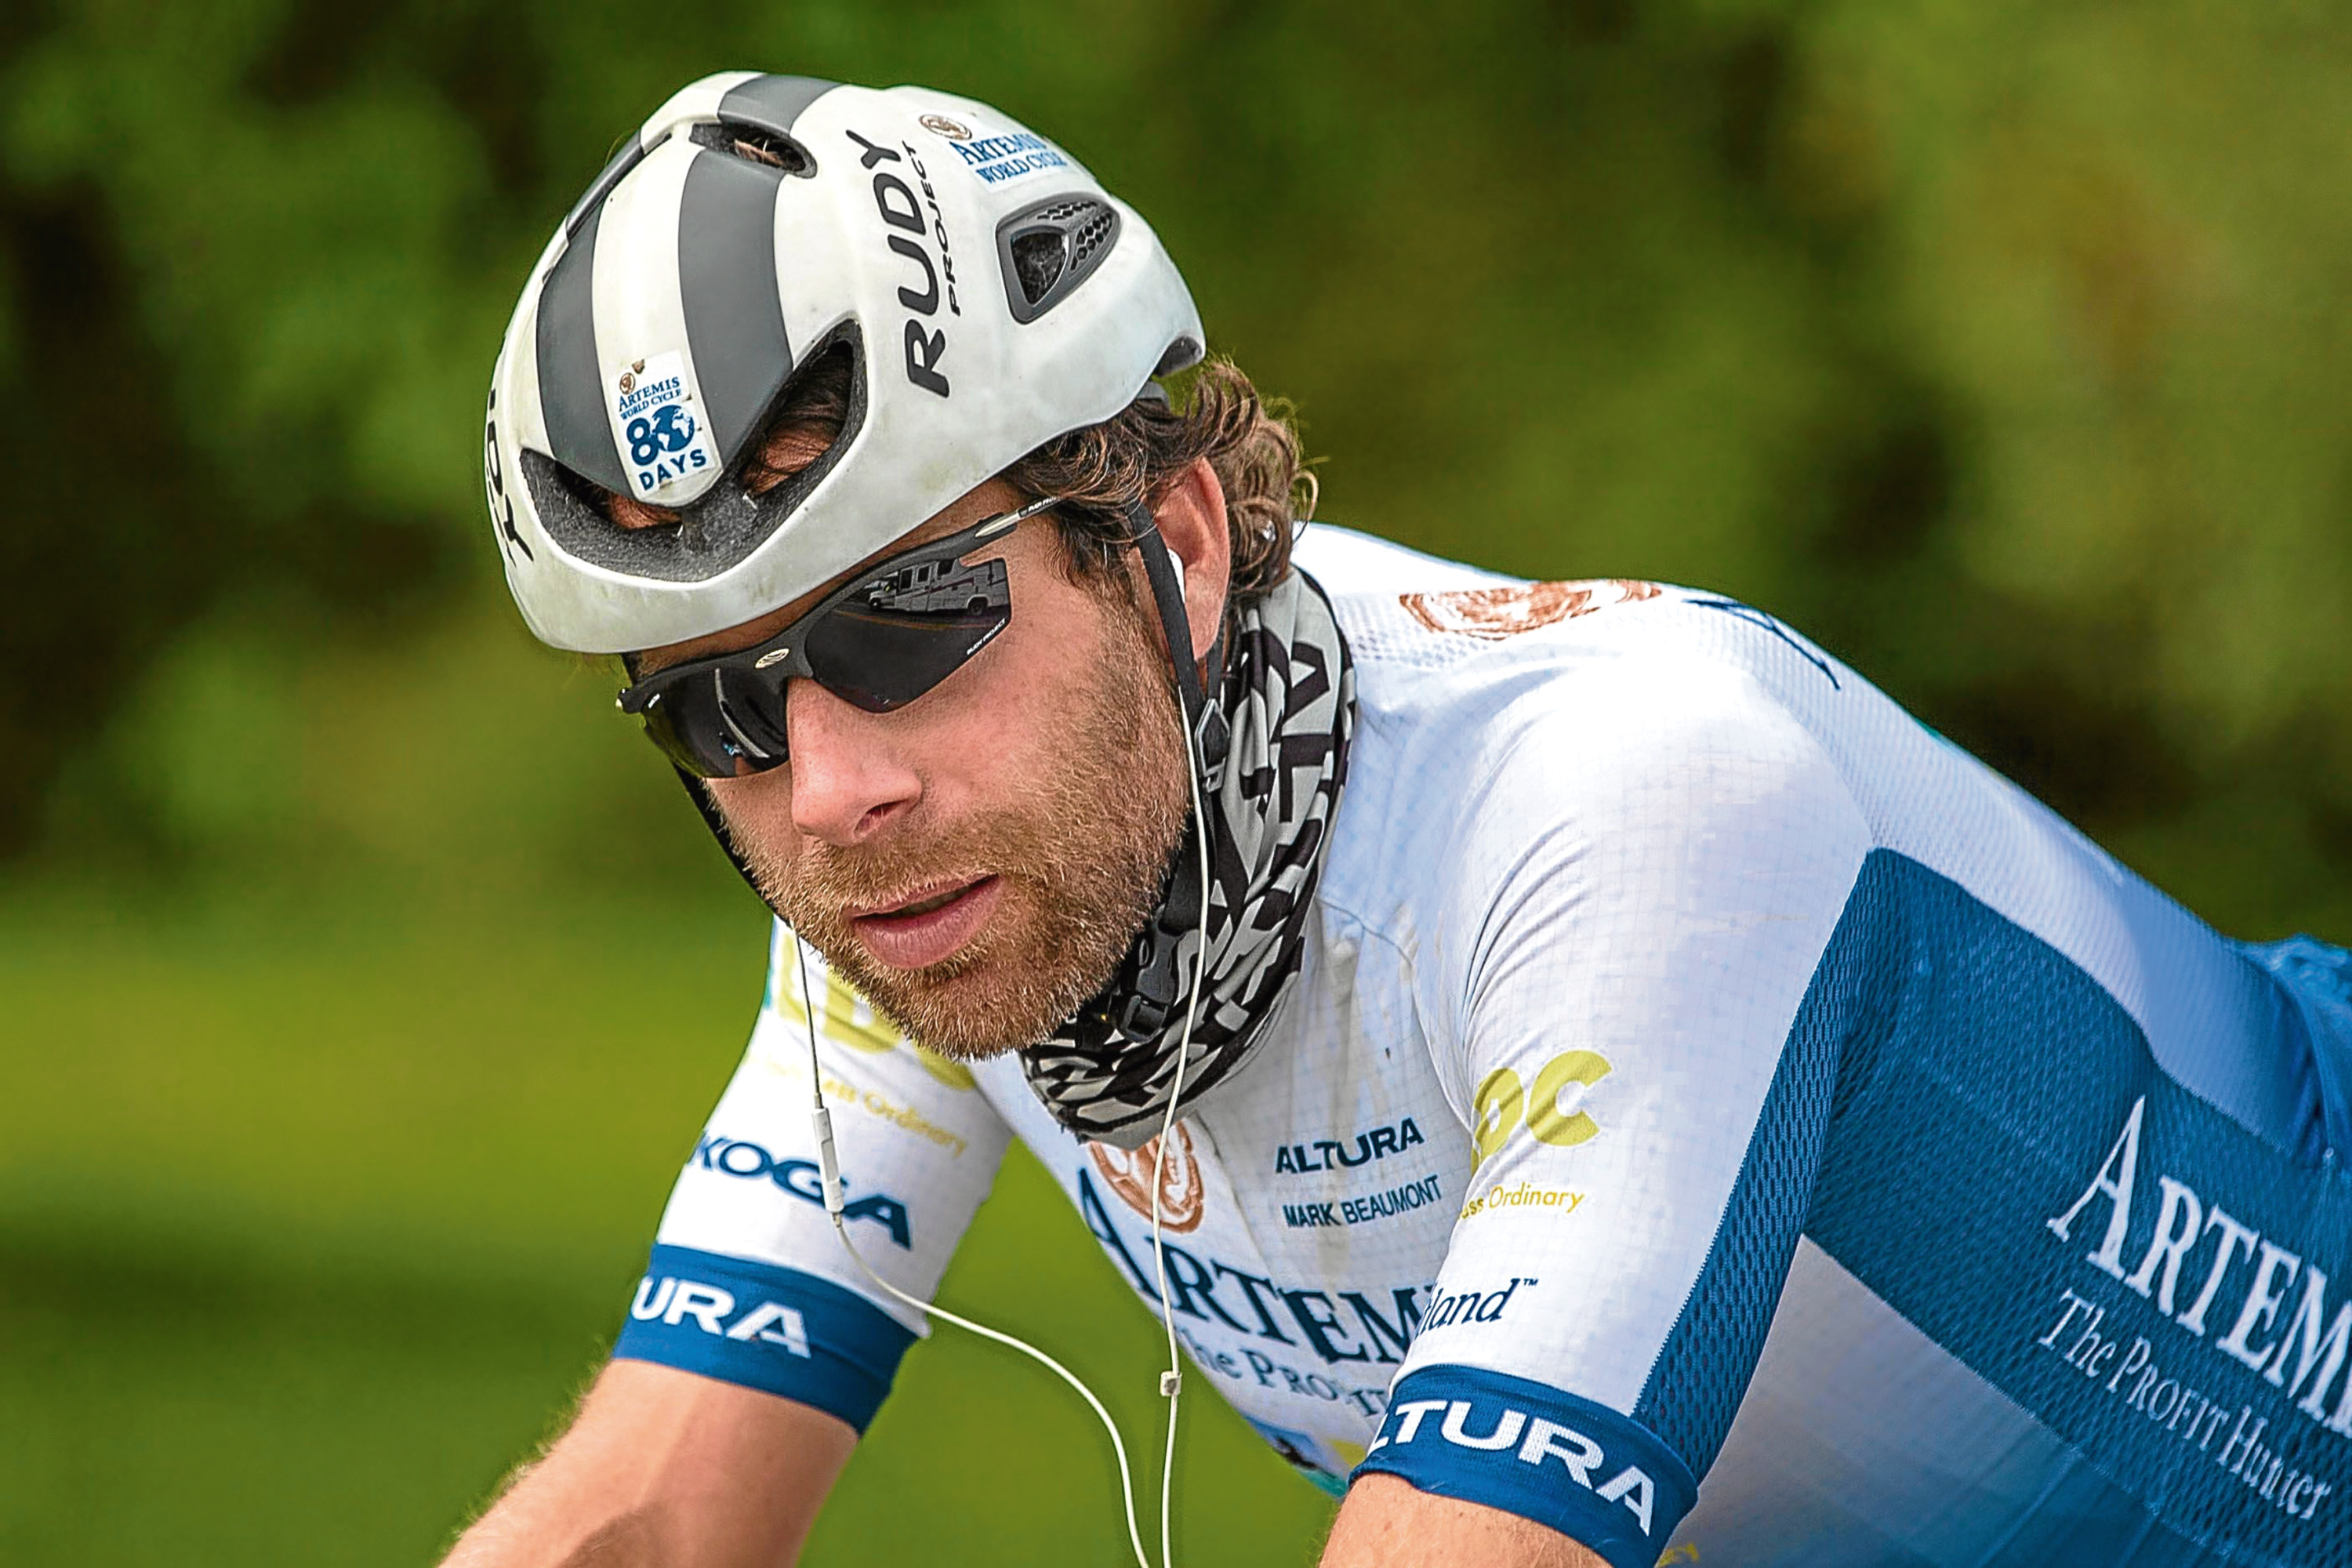 Mark Beaumont successfully completed his challenge to circumnavigate the globe within 80 days.